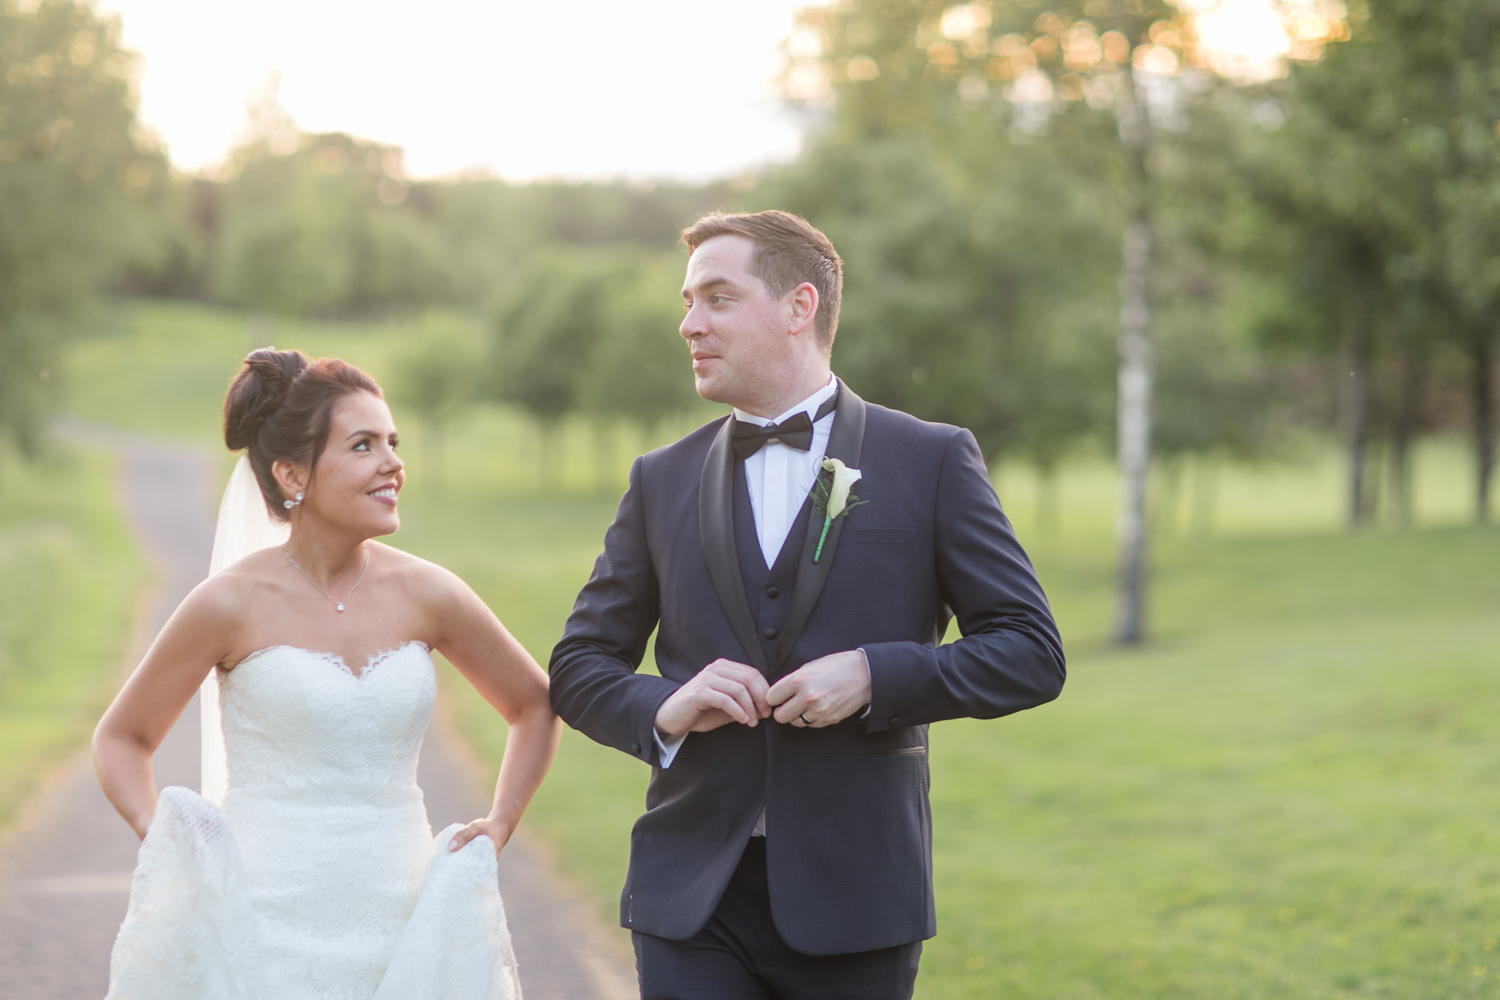 bride holding up her dress walking while groom is buttening his tux in the evening light